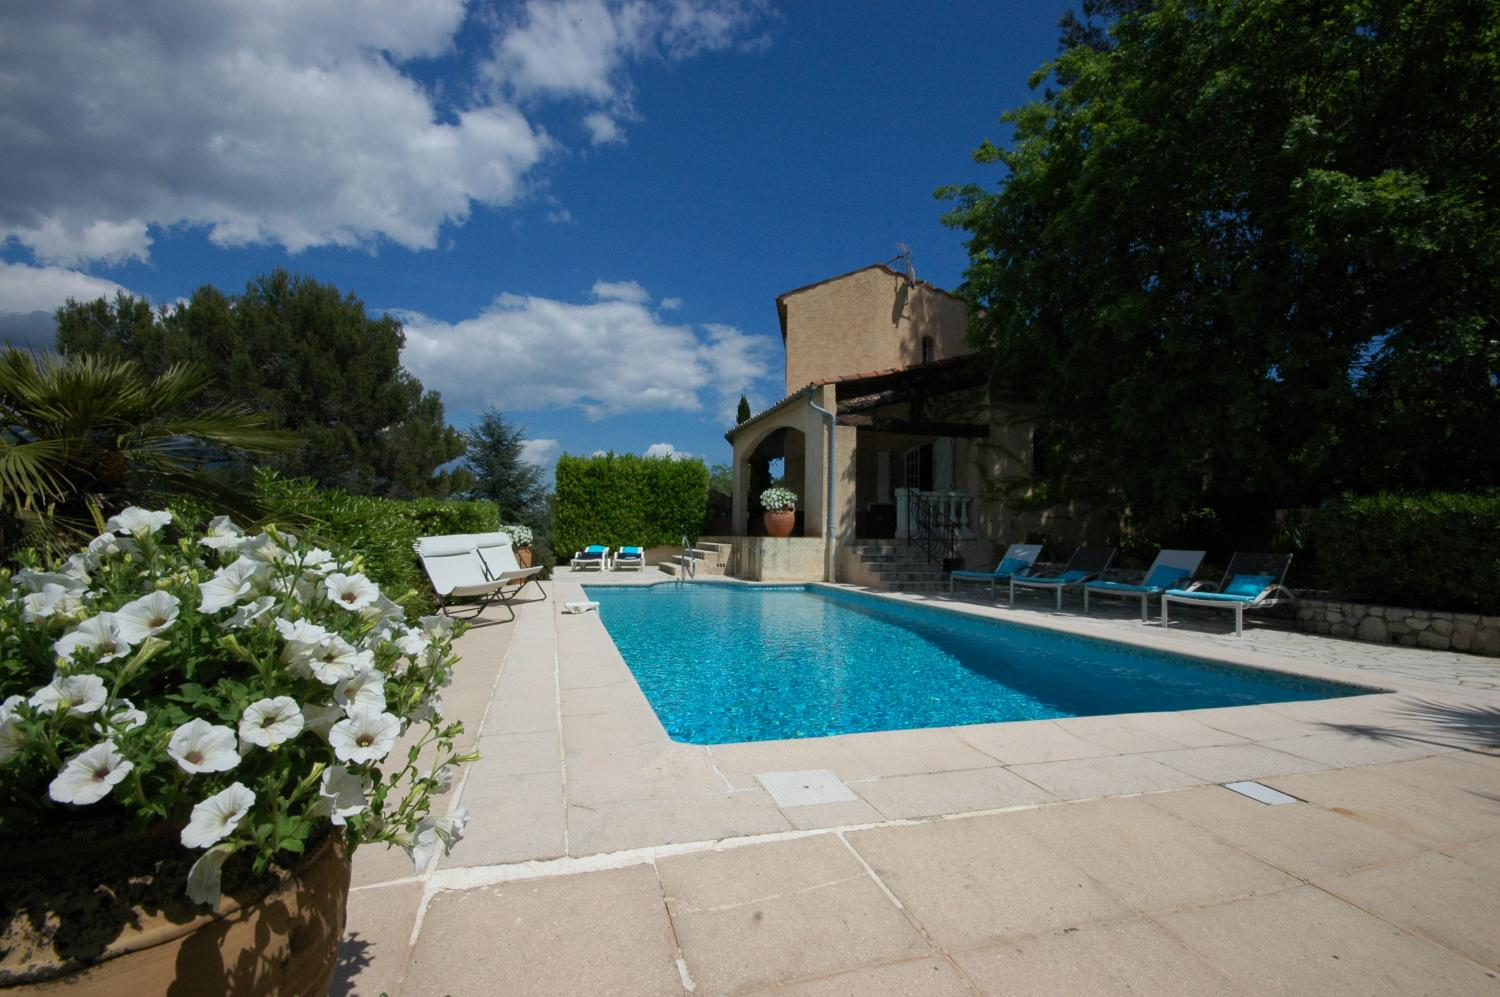 Cote d'Azur country villa with private pool & views